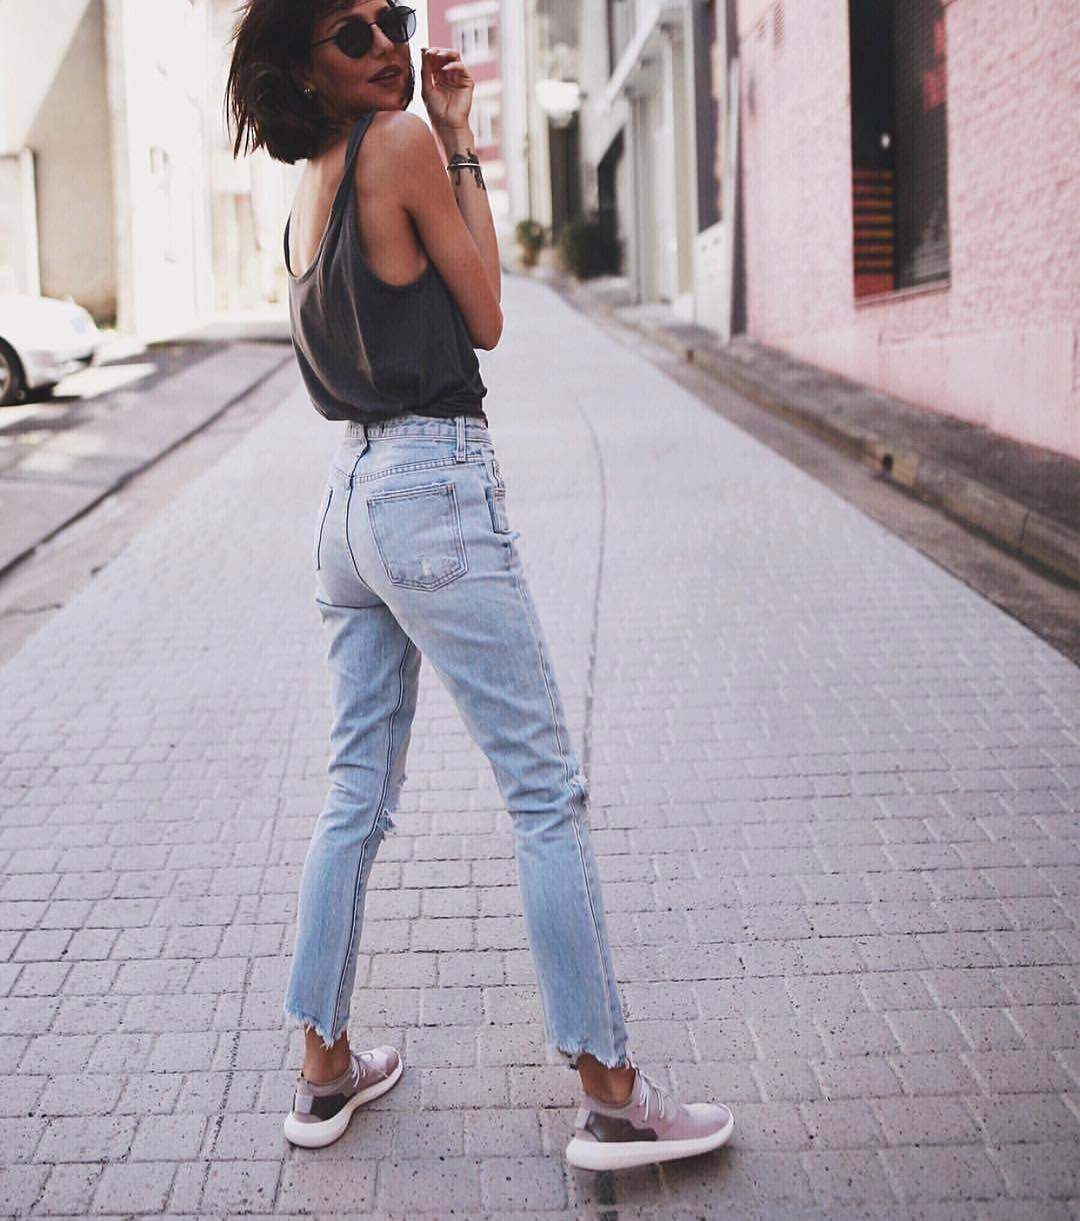 Muscle Tank Top And Wash Blue Frayed Jeans: Basic Summer Must-Haves 2020